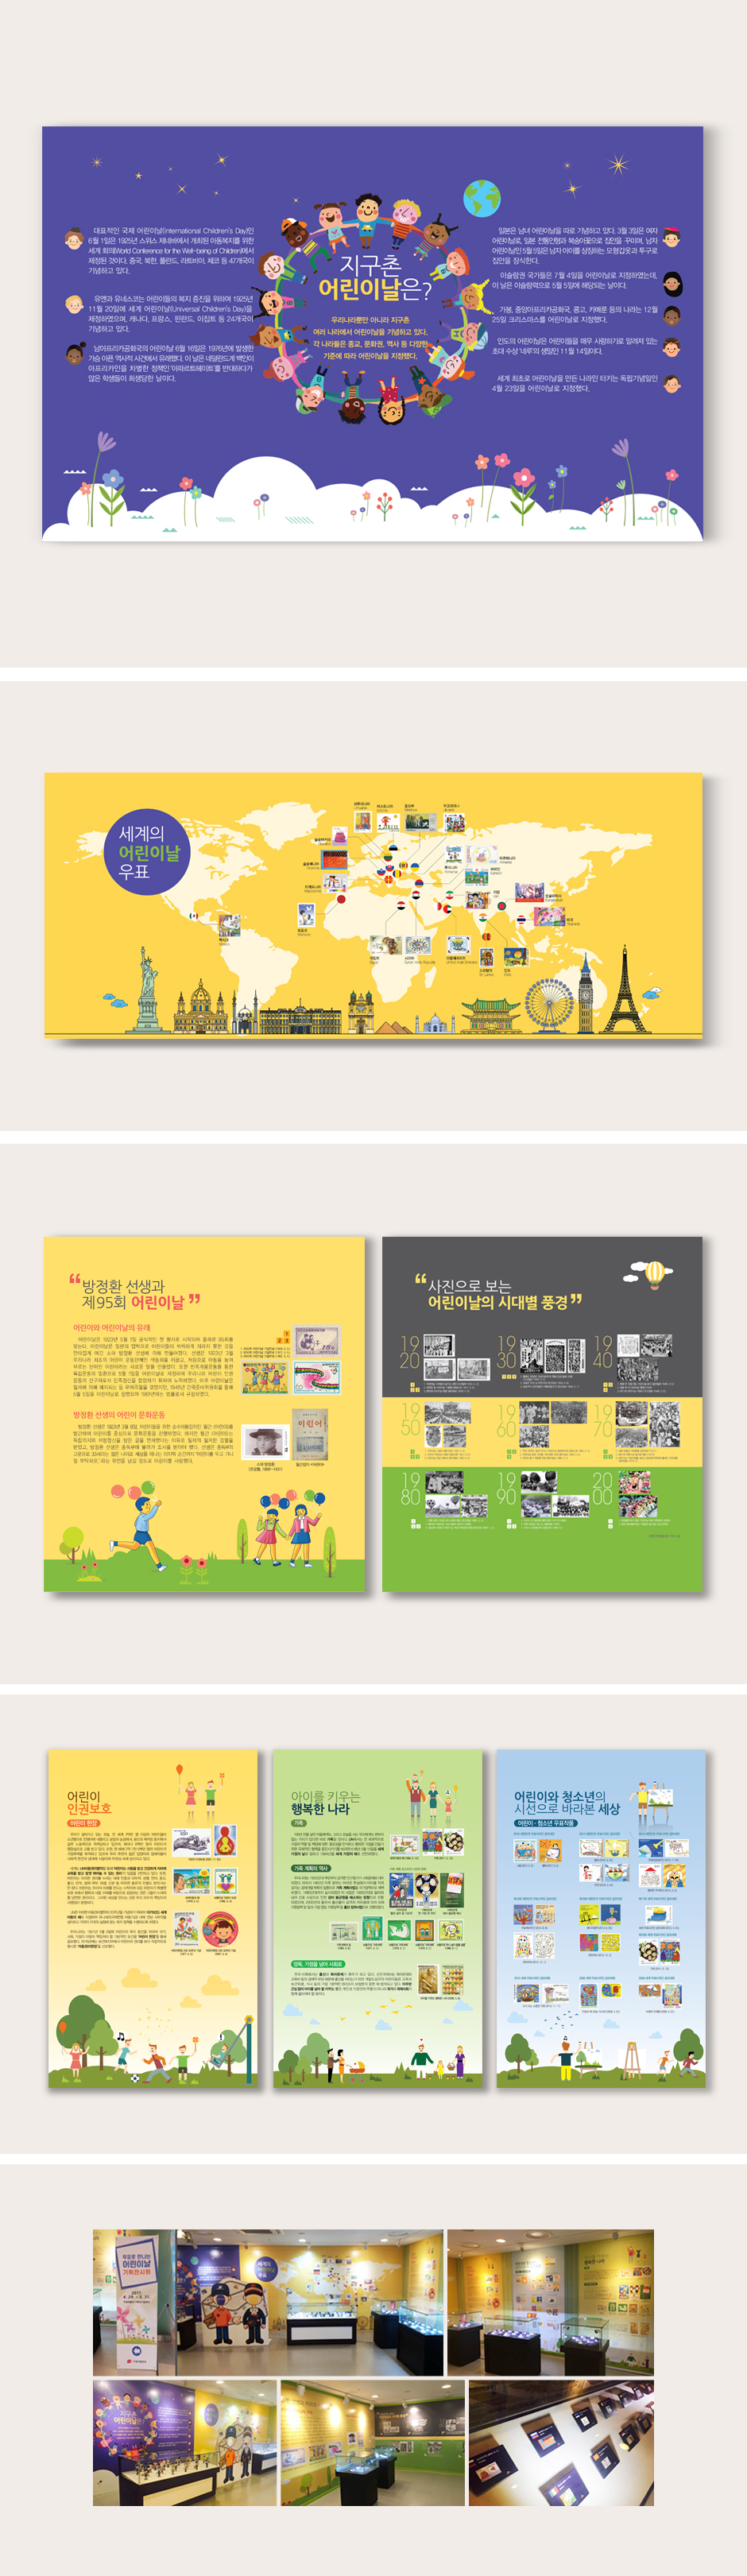 KOREA POST Childrens day and postage stamp 2017